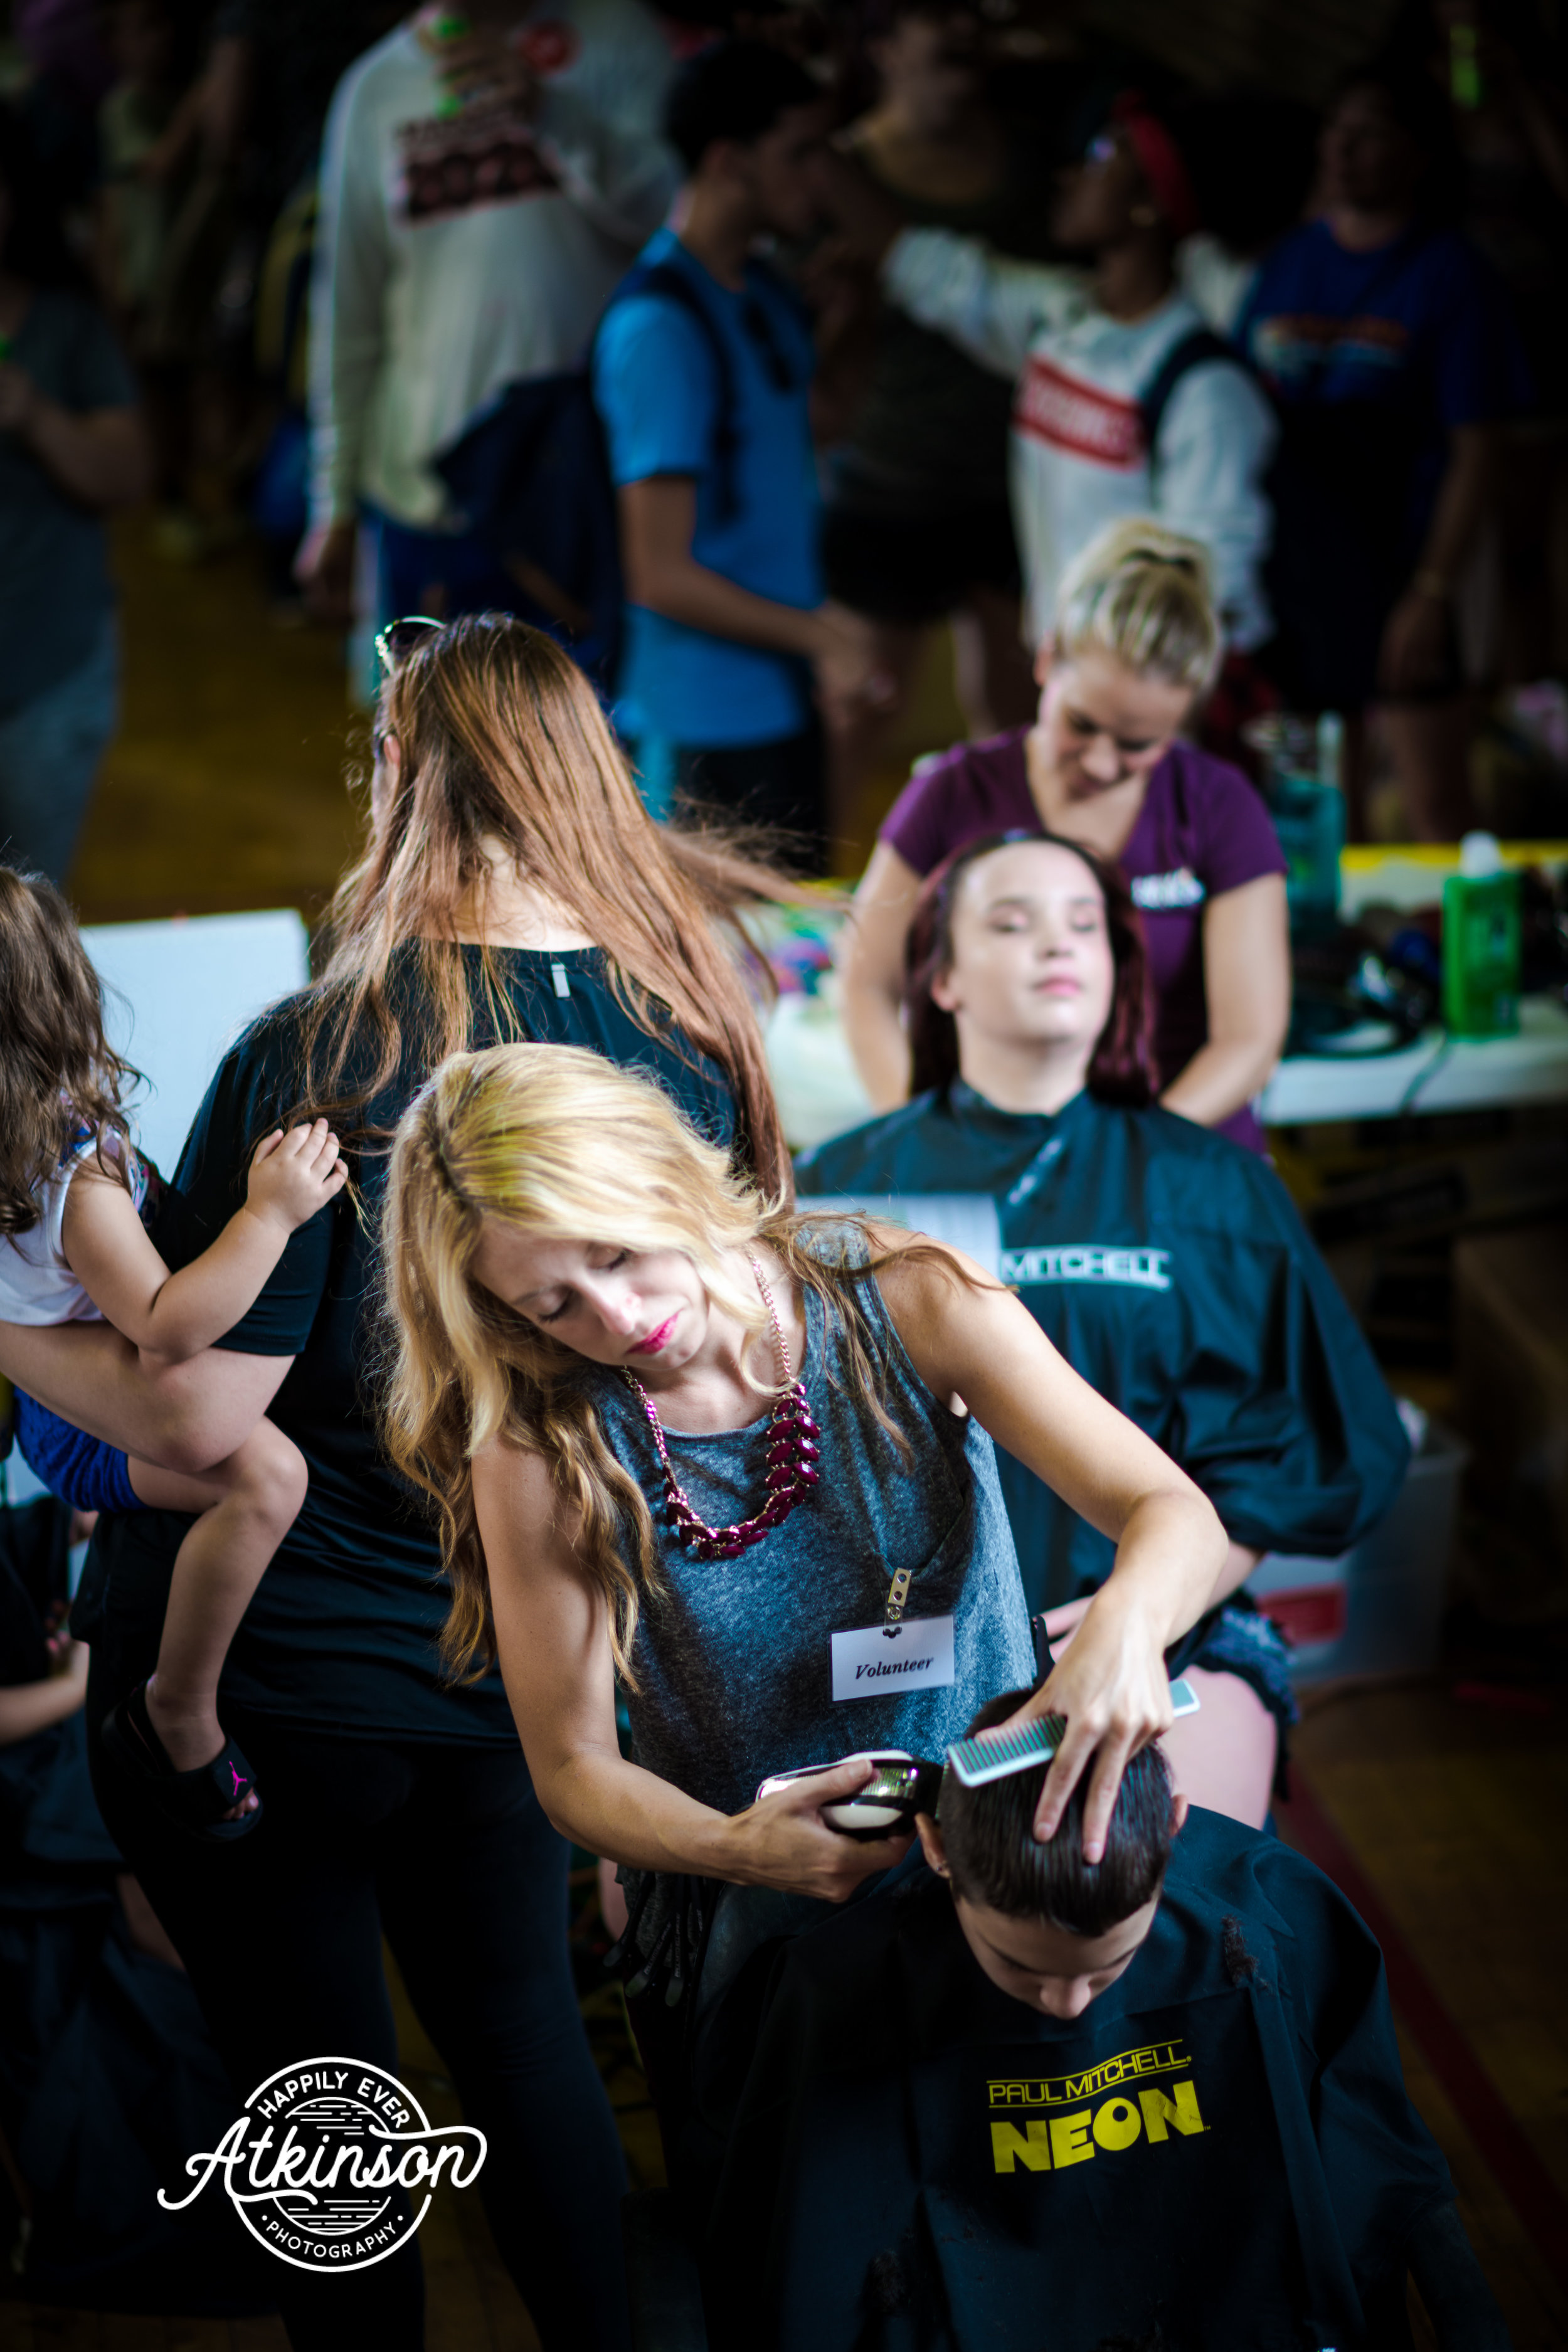 Woman cuts hair in front of a crowd